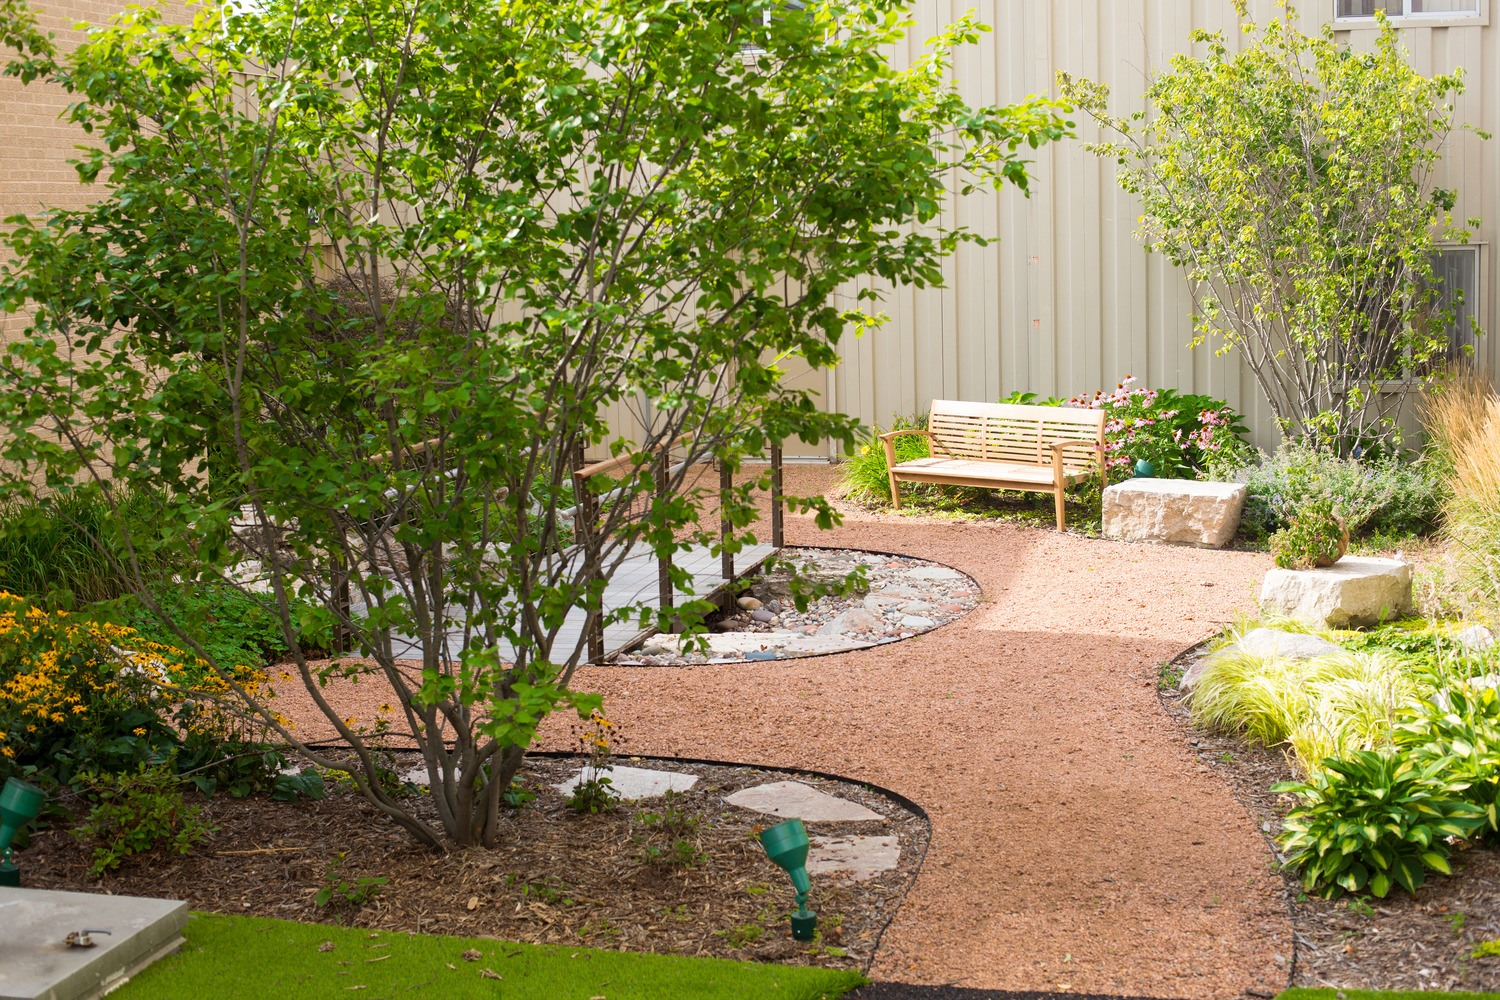 A Therapeutic Garden That Helps People Heal Hga